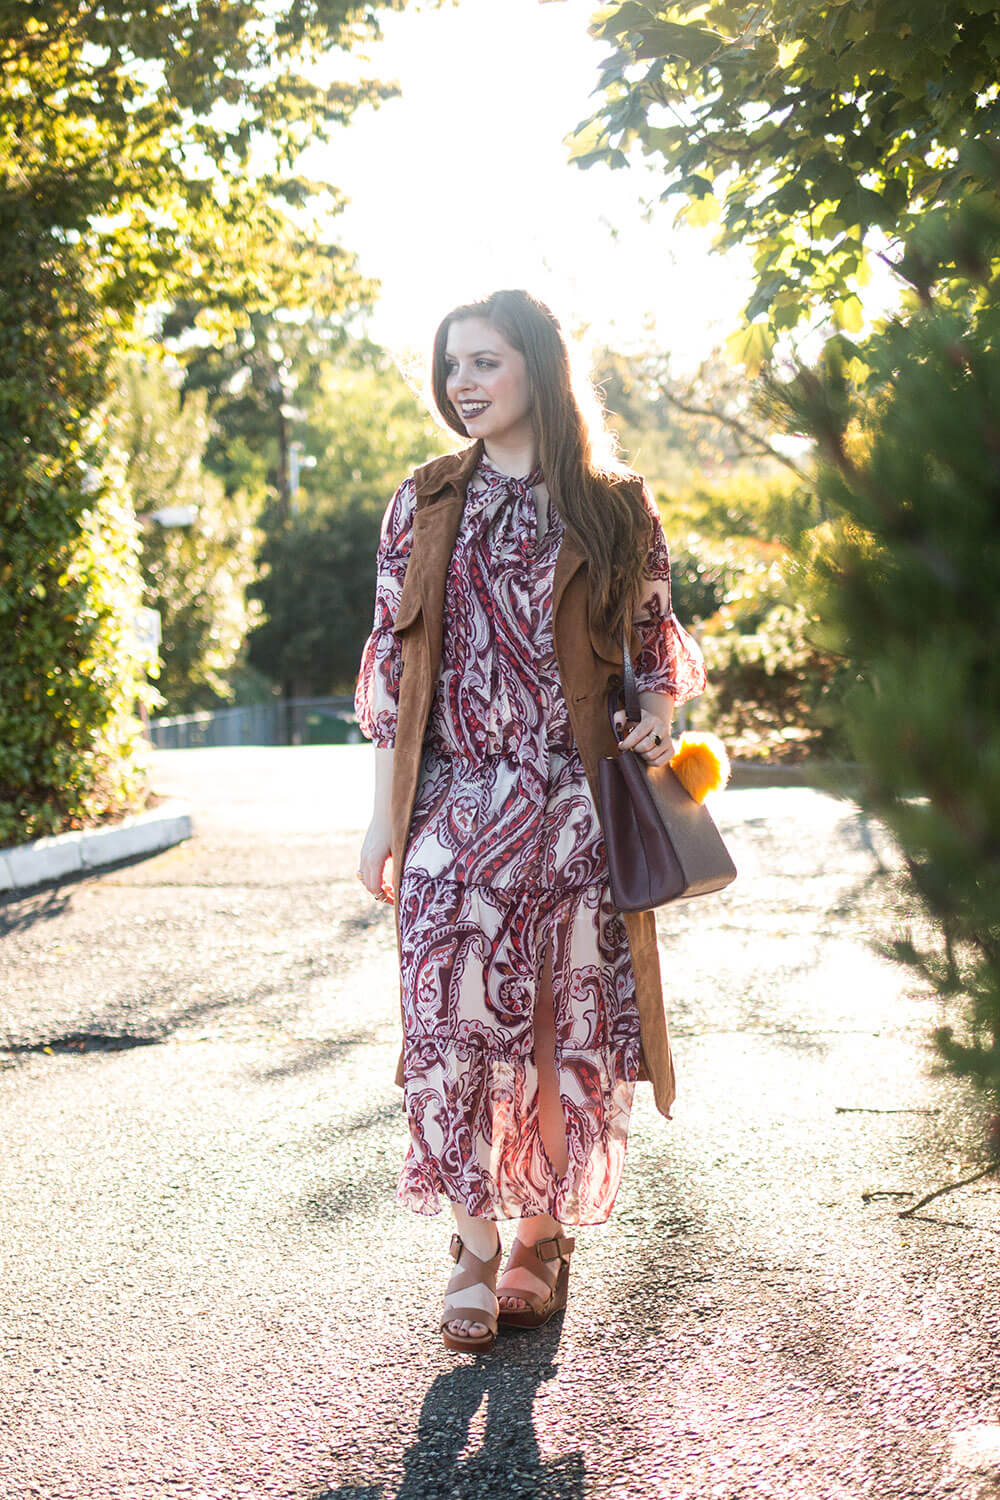 Back to School Outfit: Fall 70s Inspired Hippie Chic Look // Hello Rigby Seattle Fashion Blog